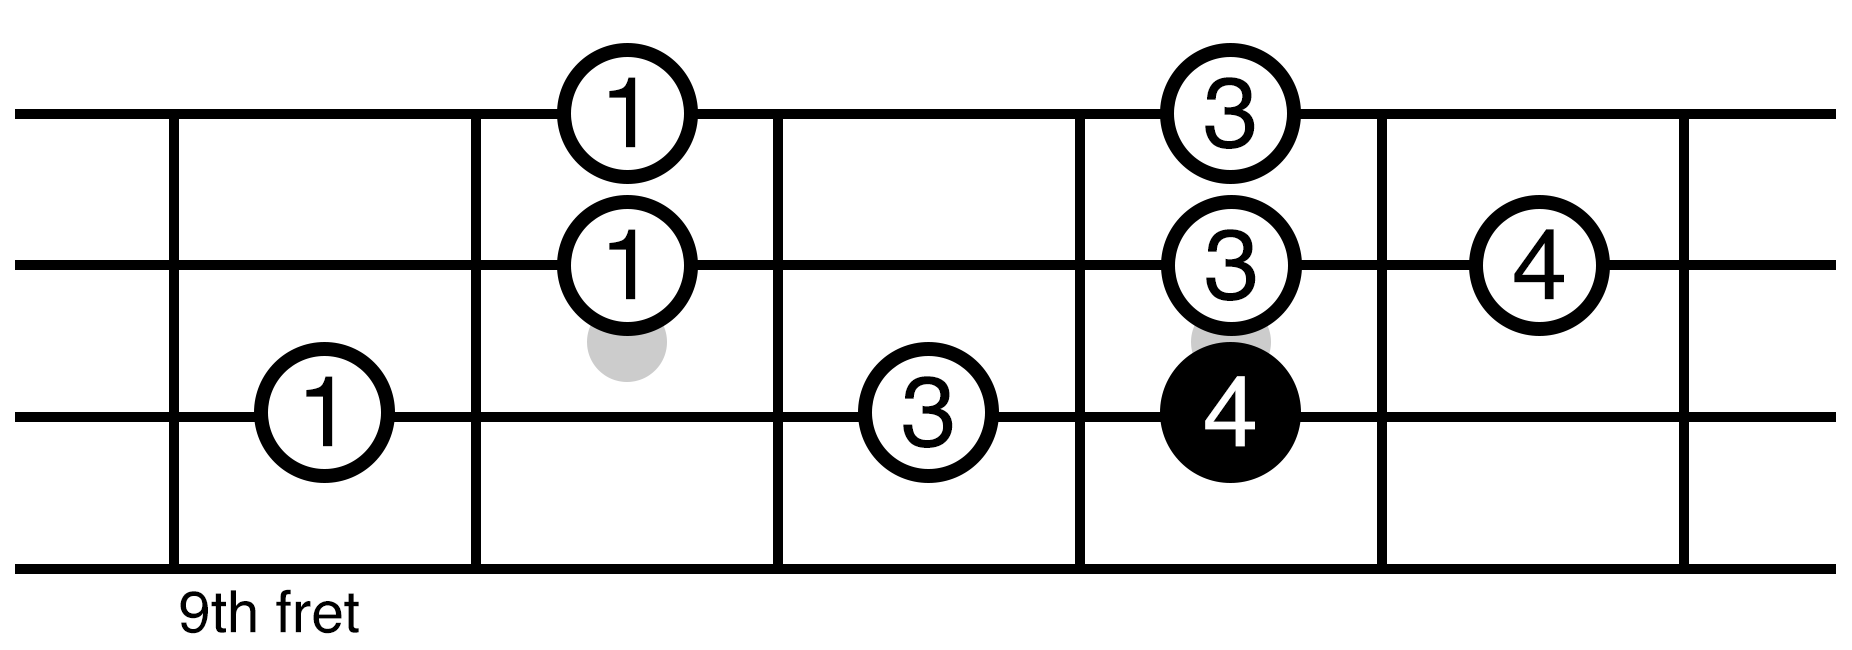 Ukulele Scales  How To Play C Major Scale Position  5 On